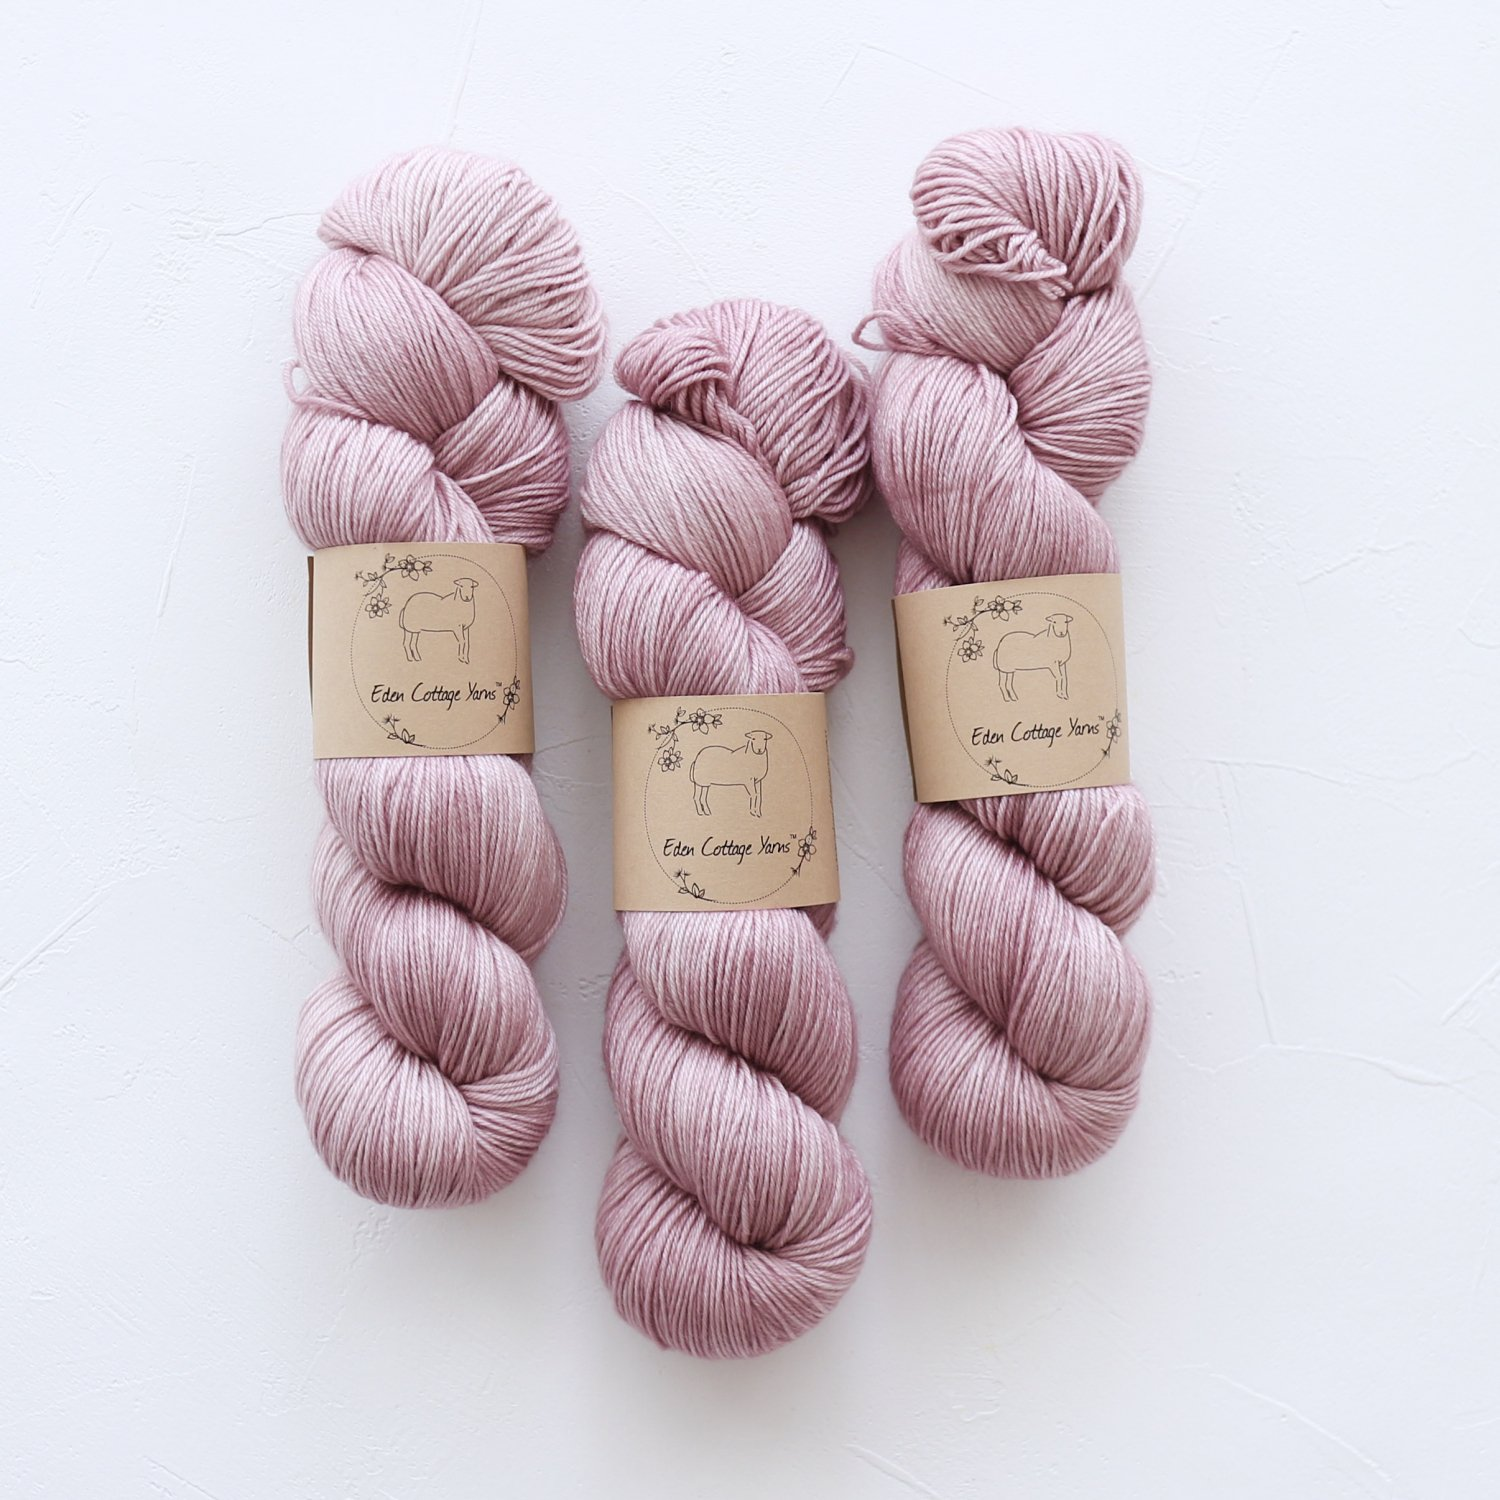 【Eden Cottage Yarns】<br>Pendle 4ply<br>Meadow Rue